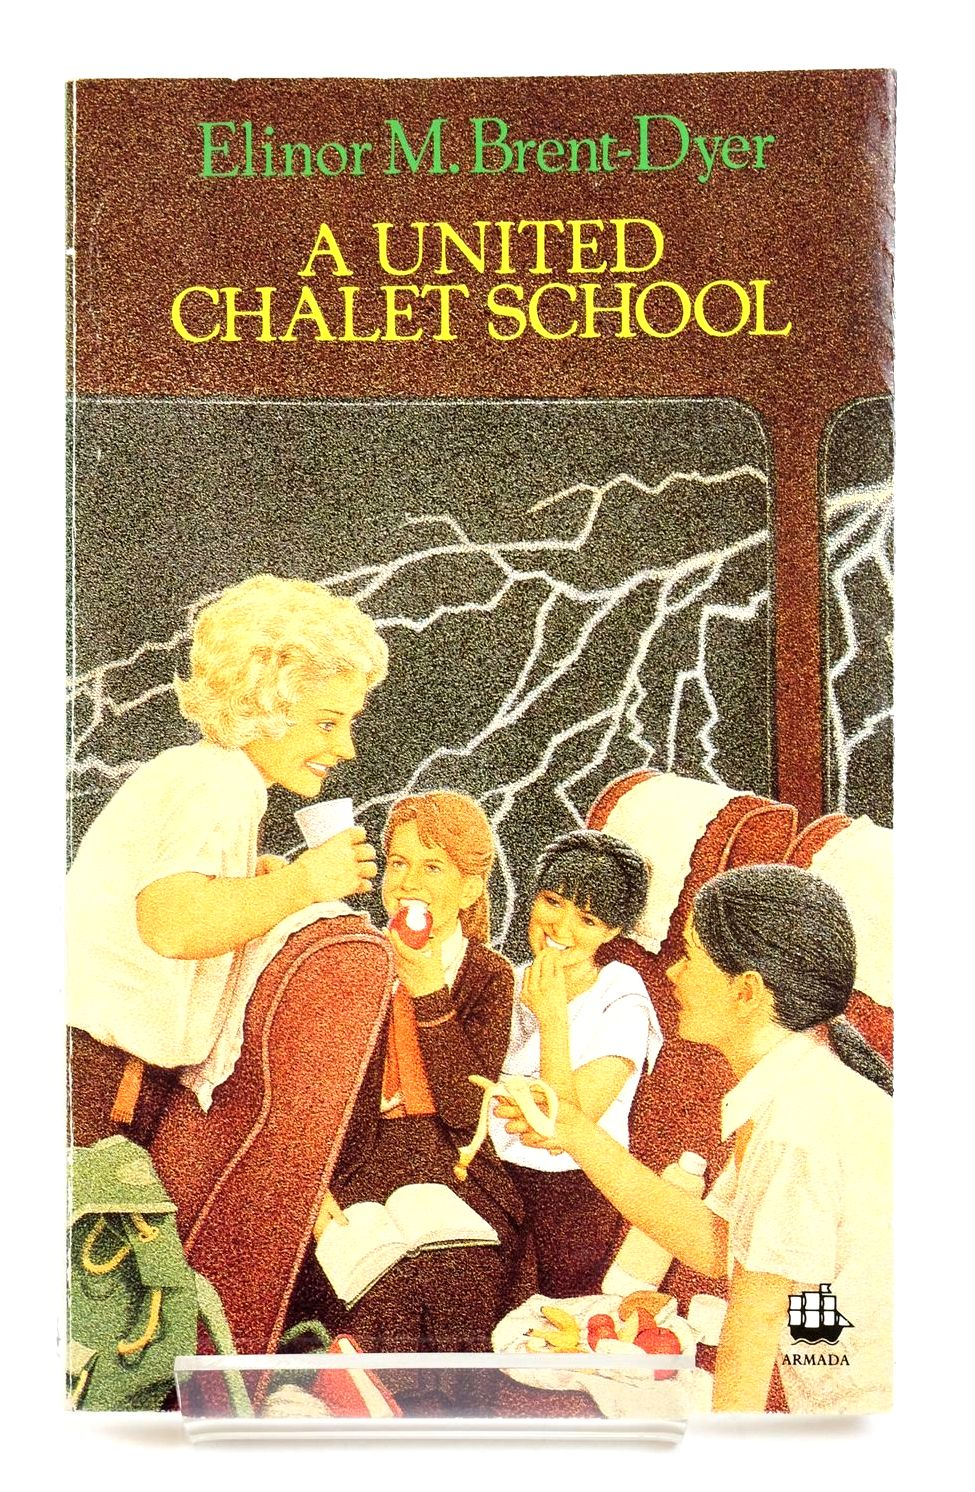 Photo of A UNITED CHALET SCHOOL written by Brent-Dyer, Elinor M. published by Armada (STOCK CODE: 1319285)  for sale by Stella & Rose's Books